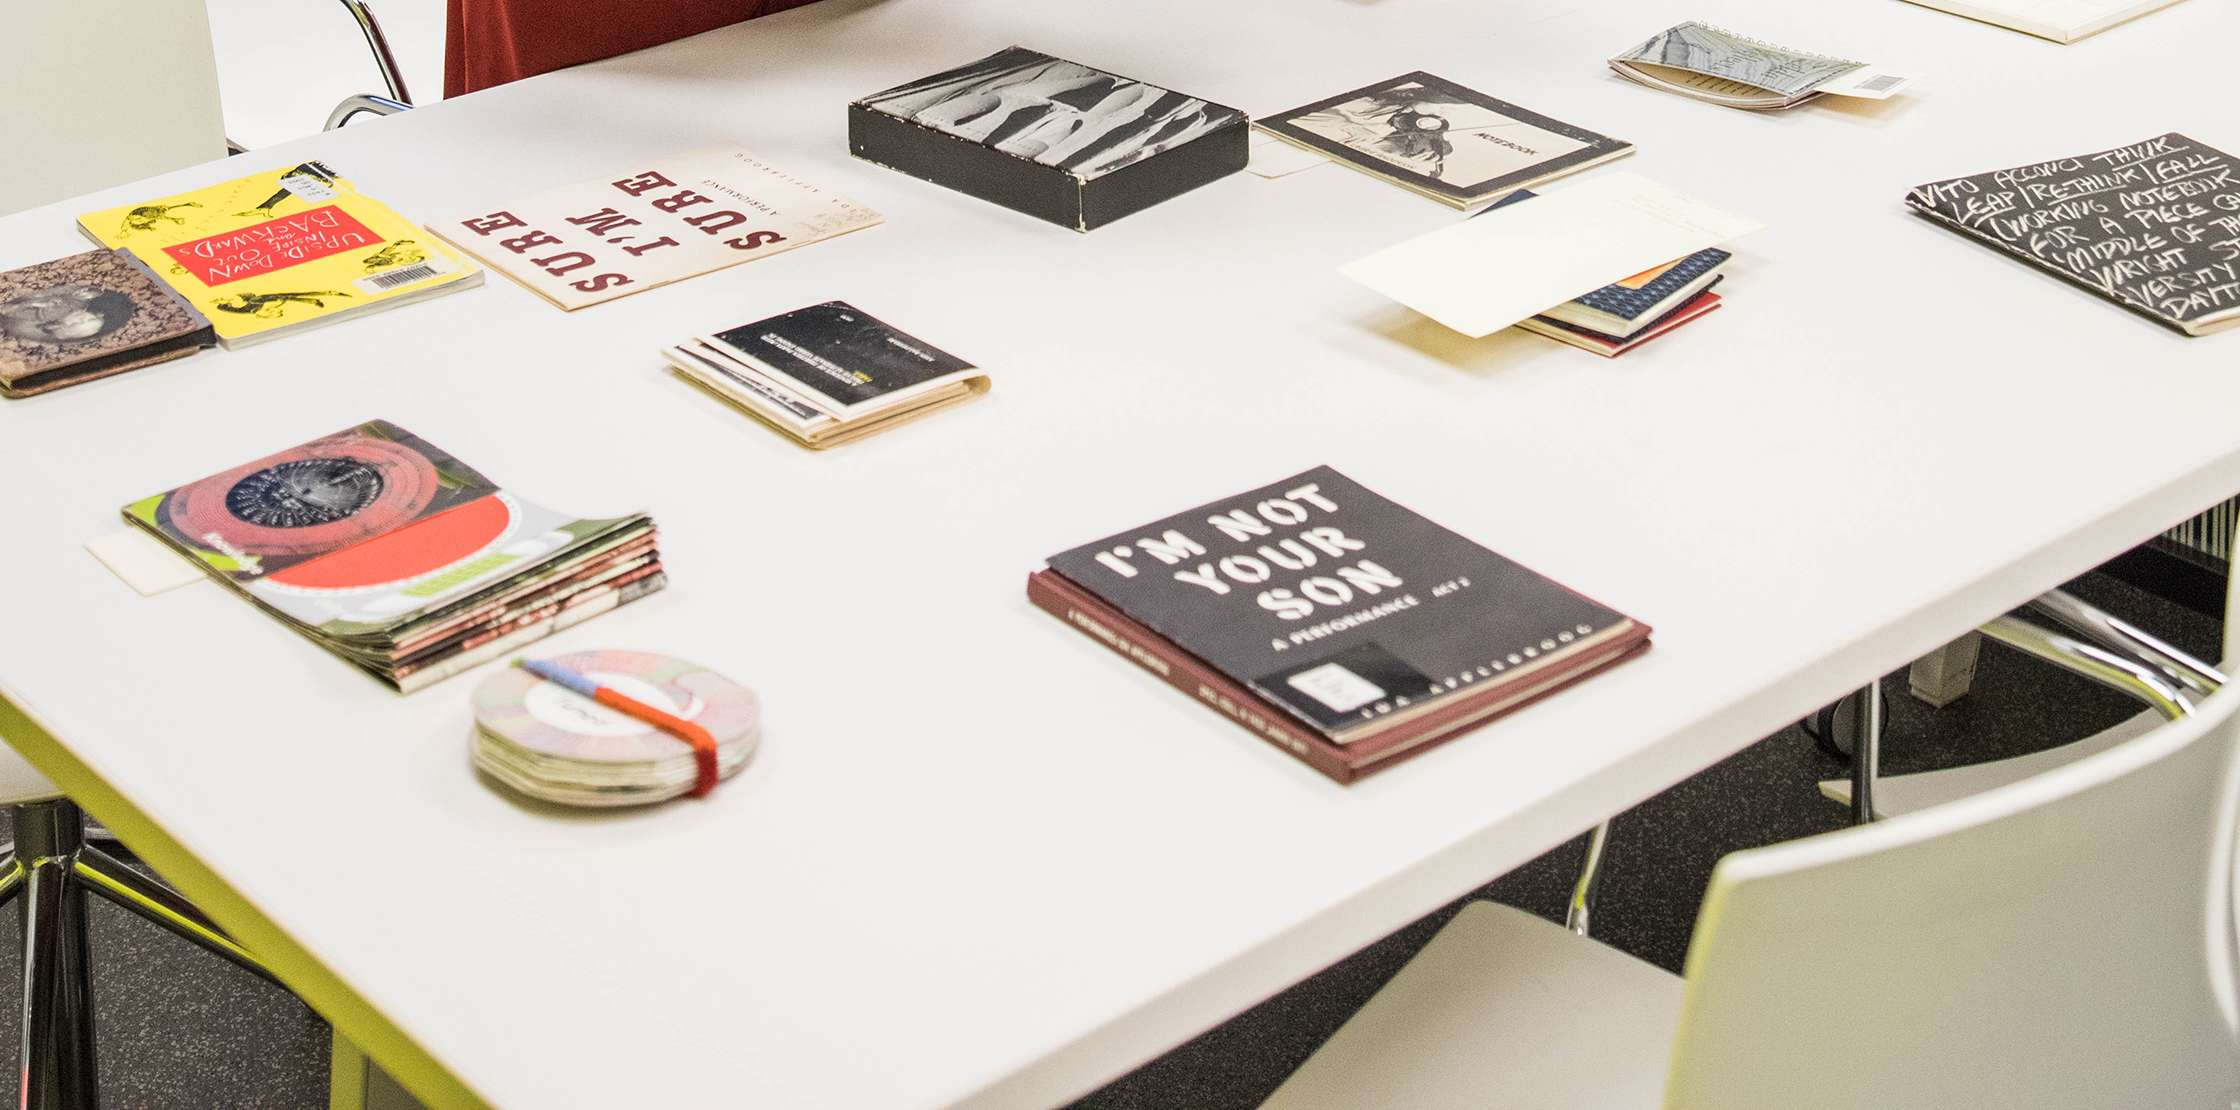 Artists' books on a table in the archives.